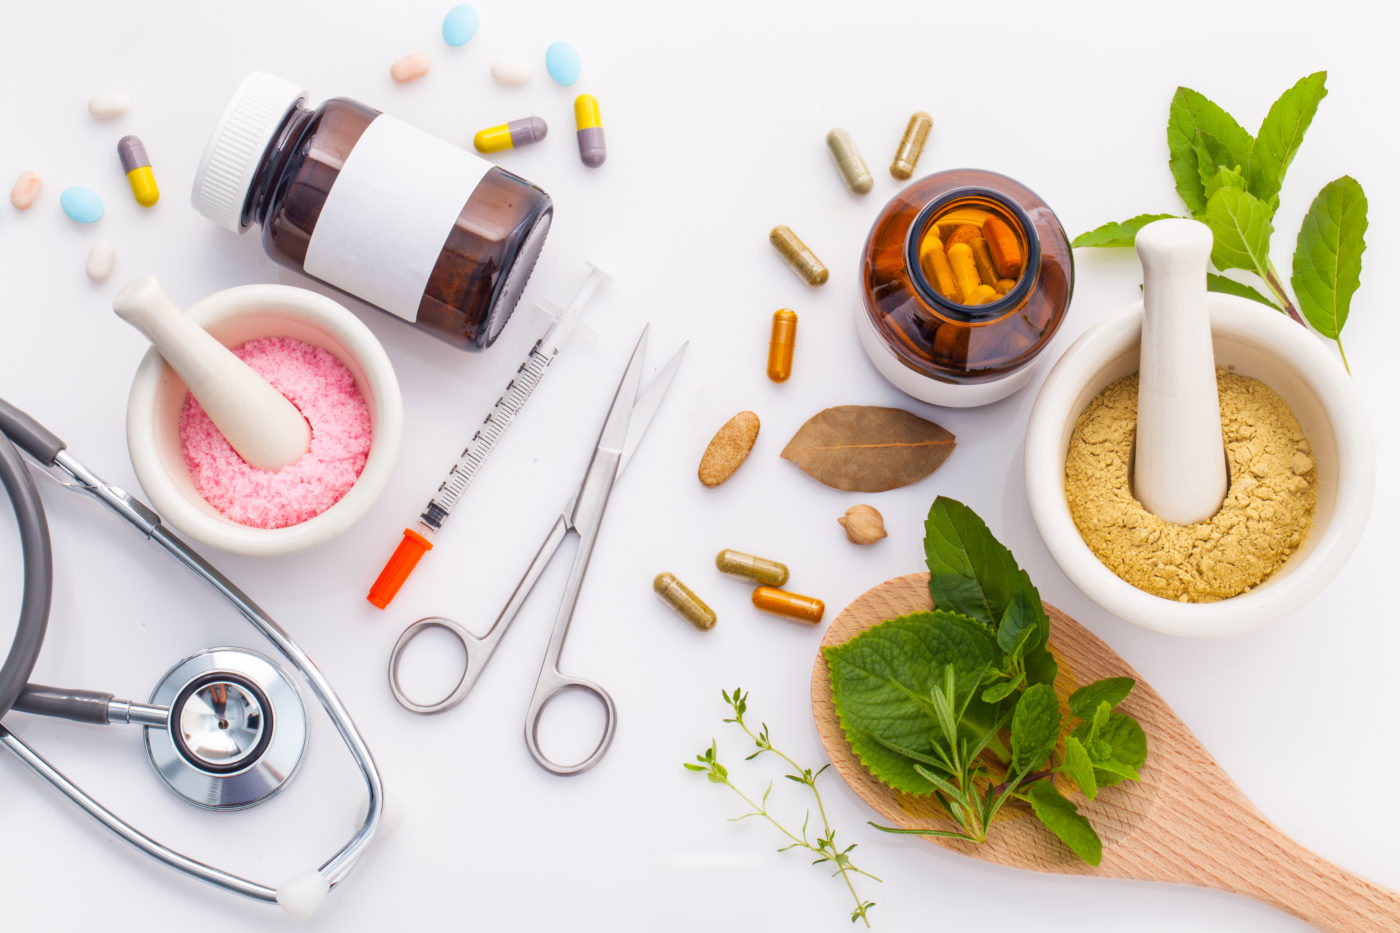 How to become naturopathic doctor